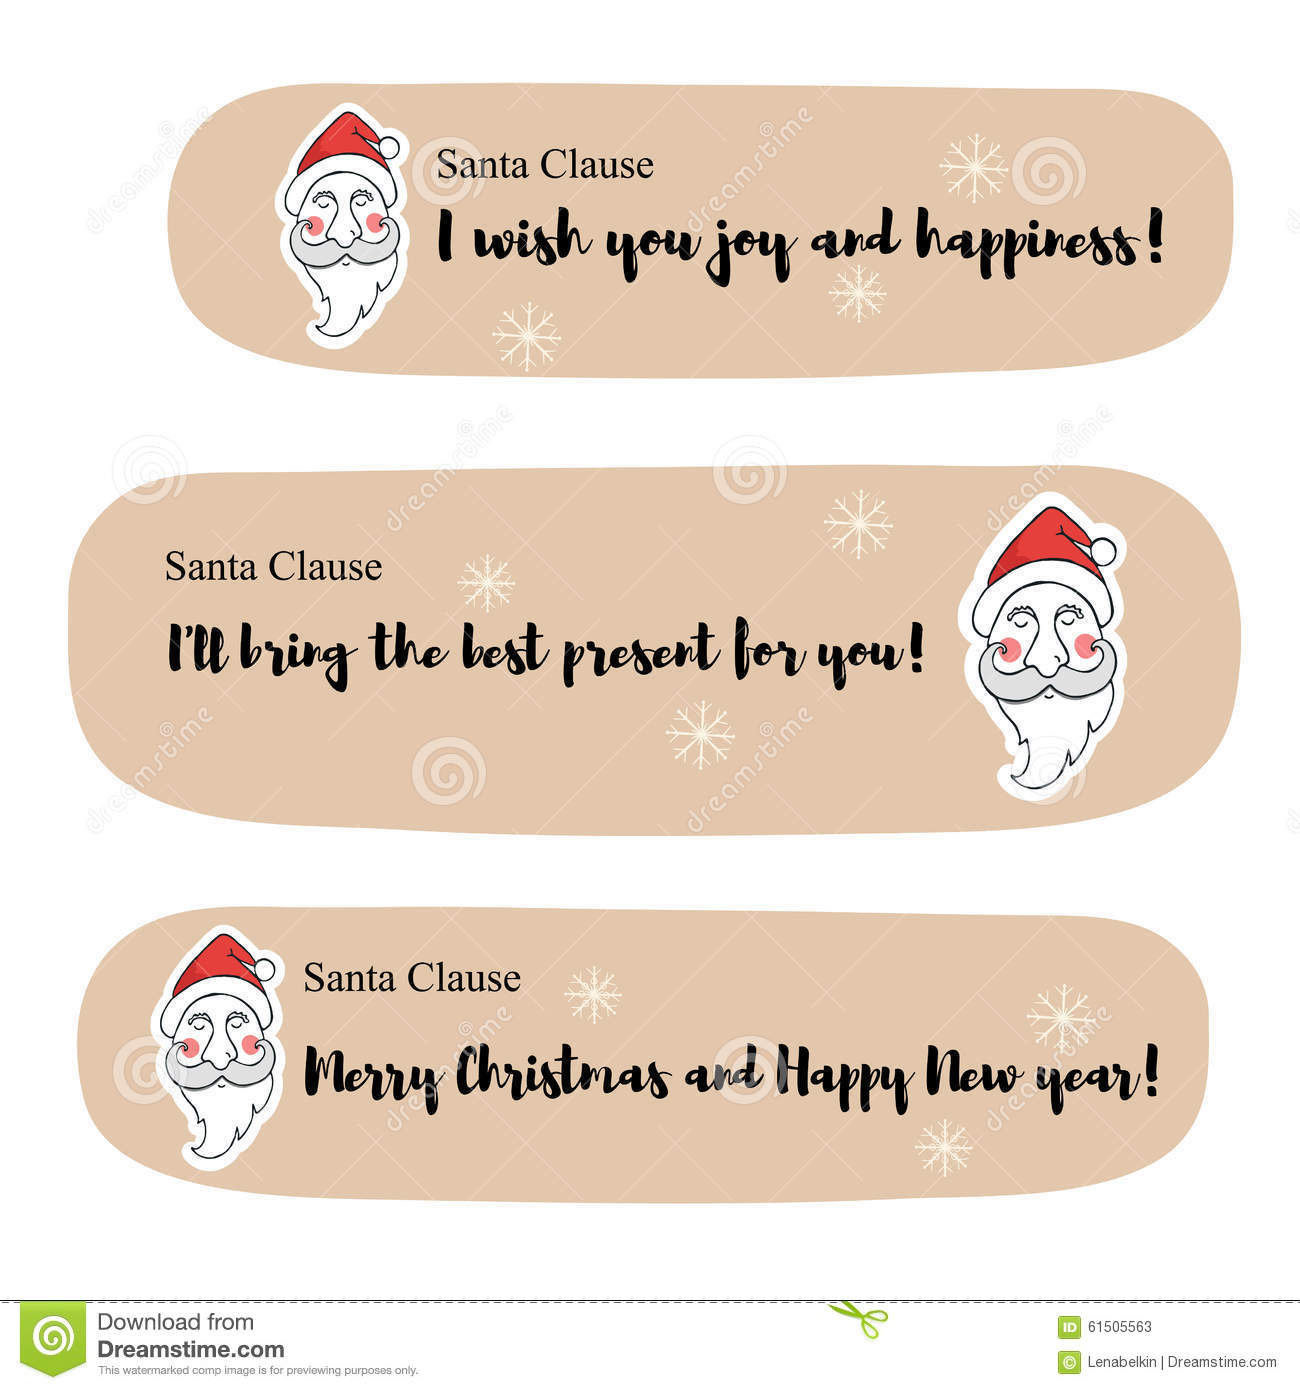 Santa Clause Messages Stock Vector Illustration Of Cute 61505563